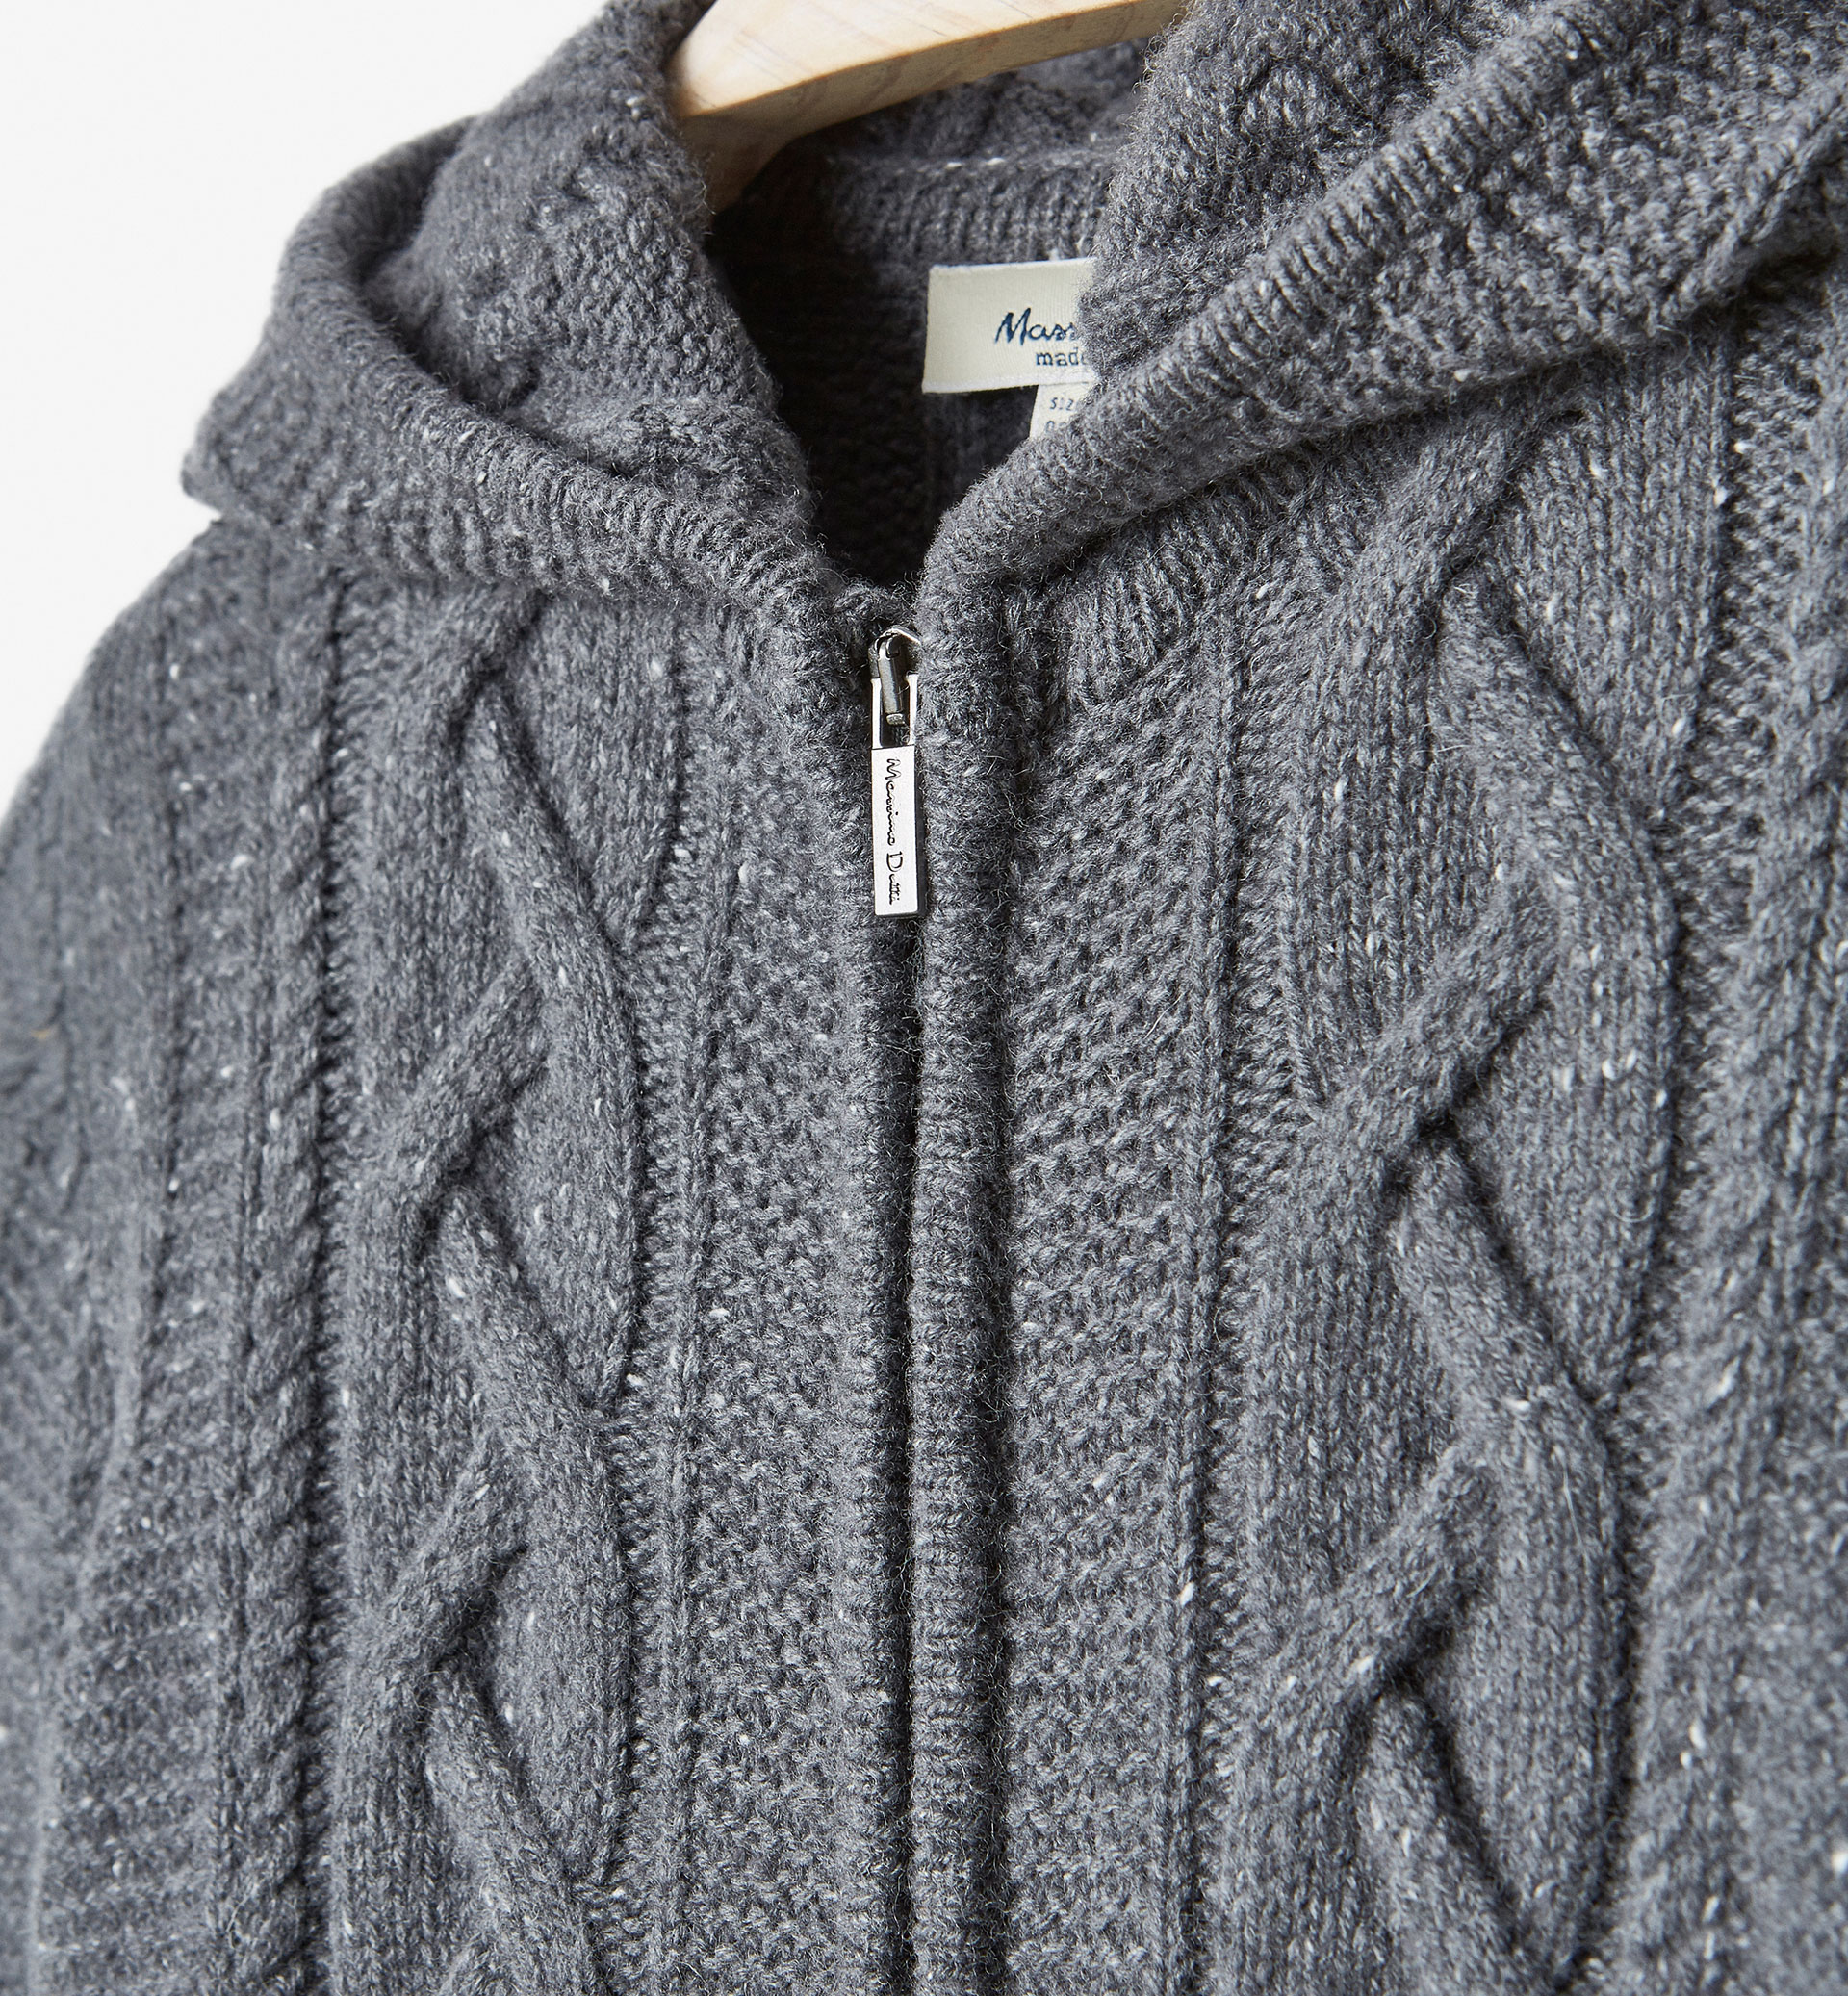 BRAIDED CARDIGAN WITH HOOD DETAIL